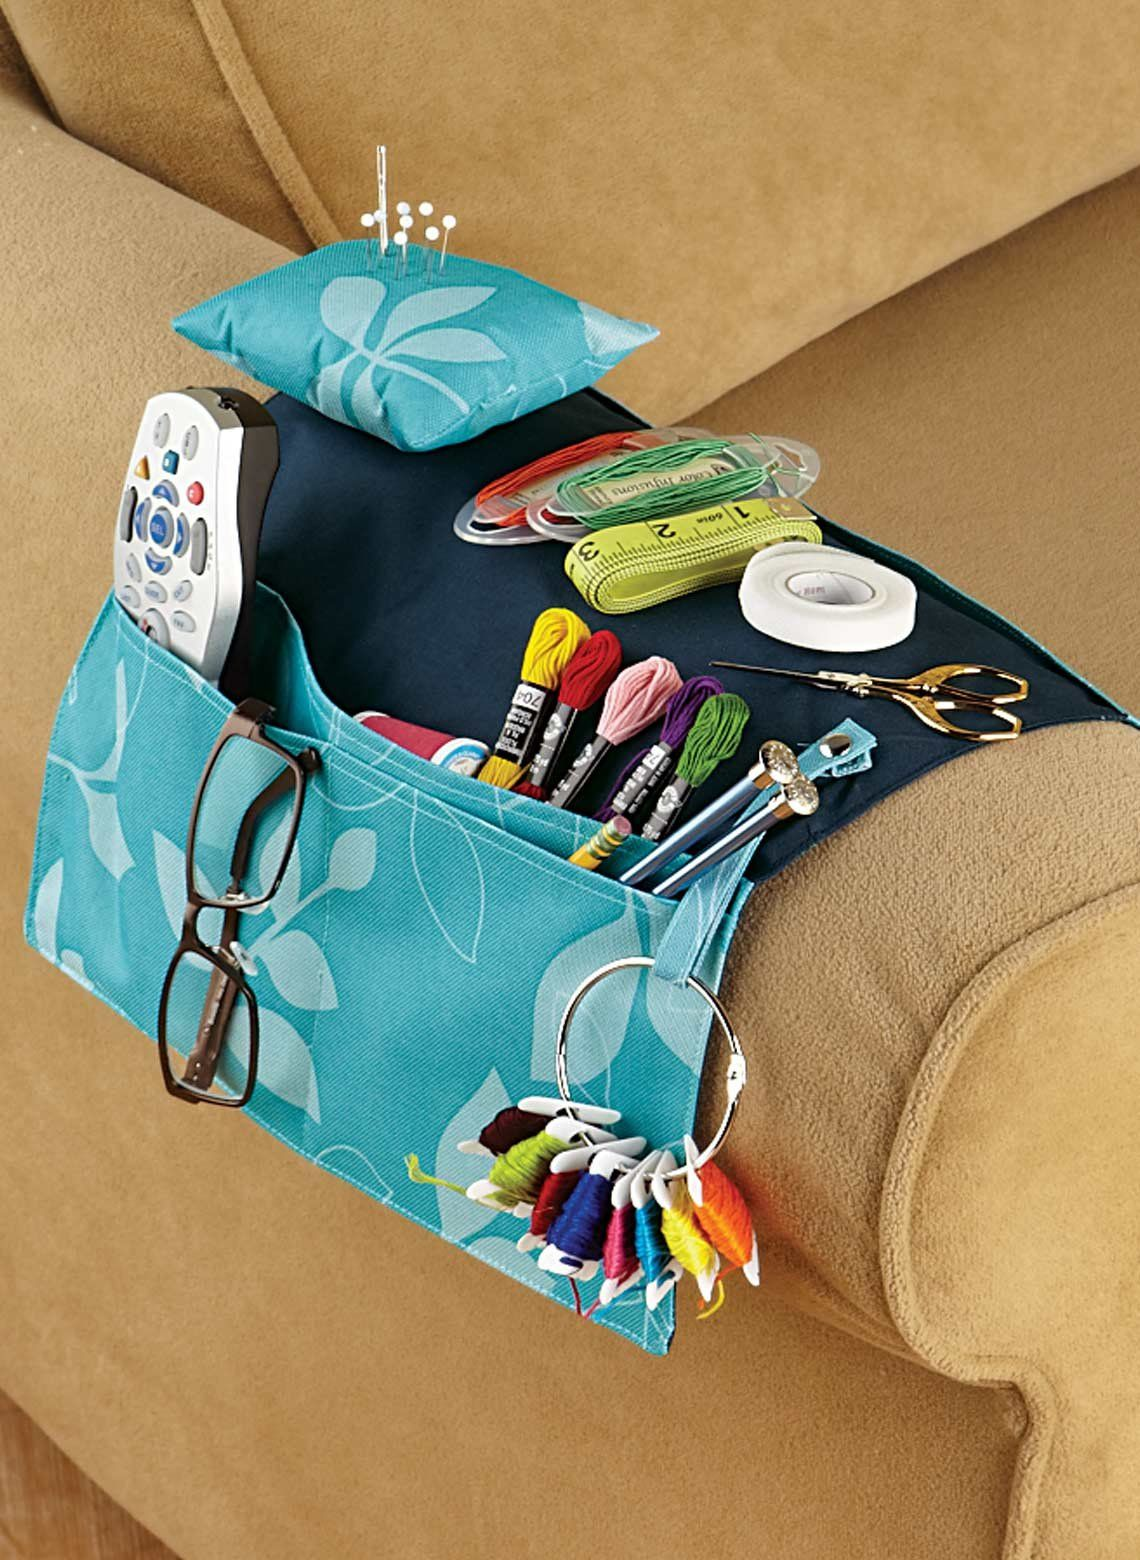 Armchair Needlework Organizer | Sewing caddy, Sewing ...